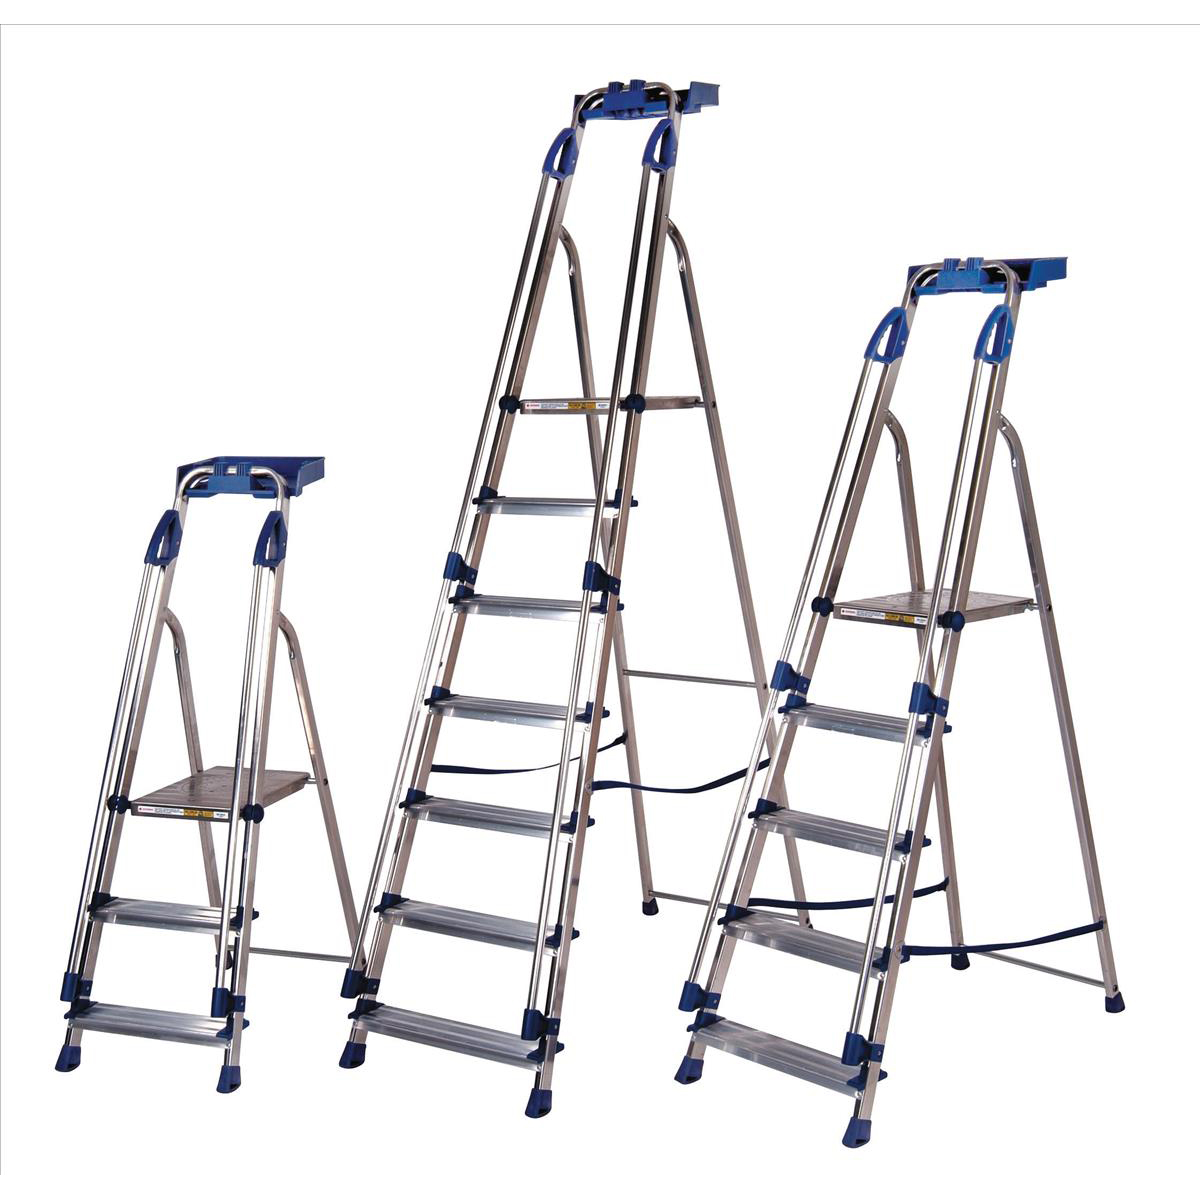 Platform step ladder Tradesman Platform Step Ladder 6 Steps Capacity 150kg Silver/Blue